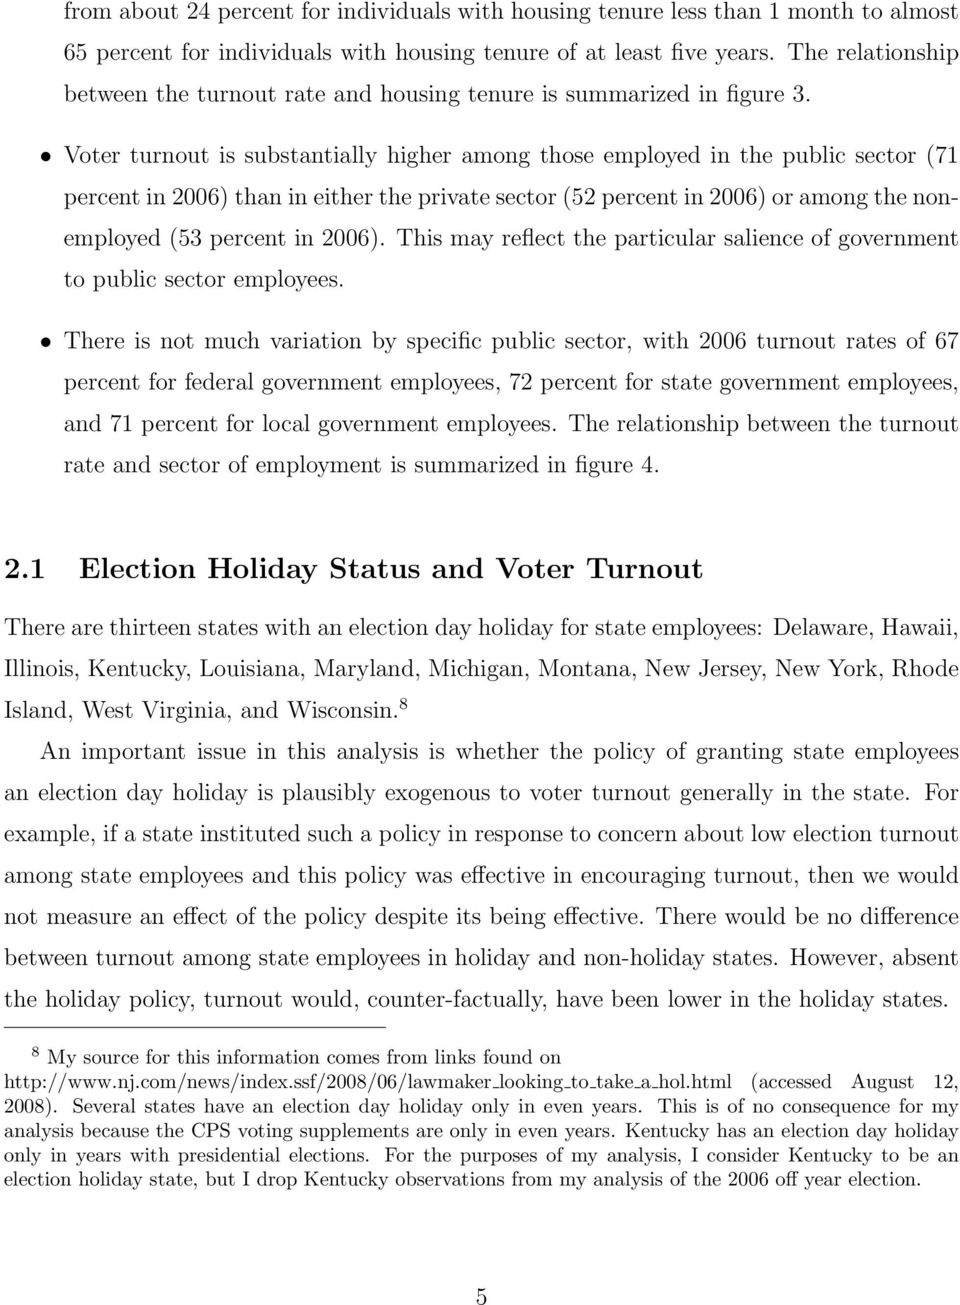 Voter turnout is substantially higher among those employed in the public sector (71 percent in 2006) than in either the private sector (52 percent in 2006) or among the nonemployed (53 percent in